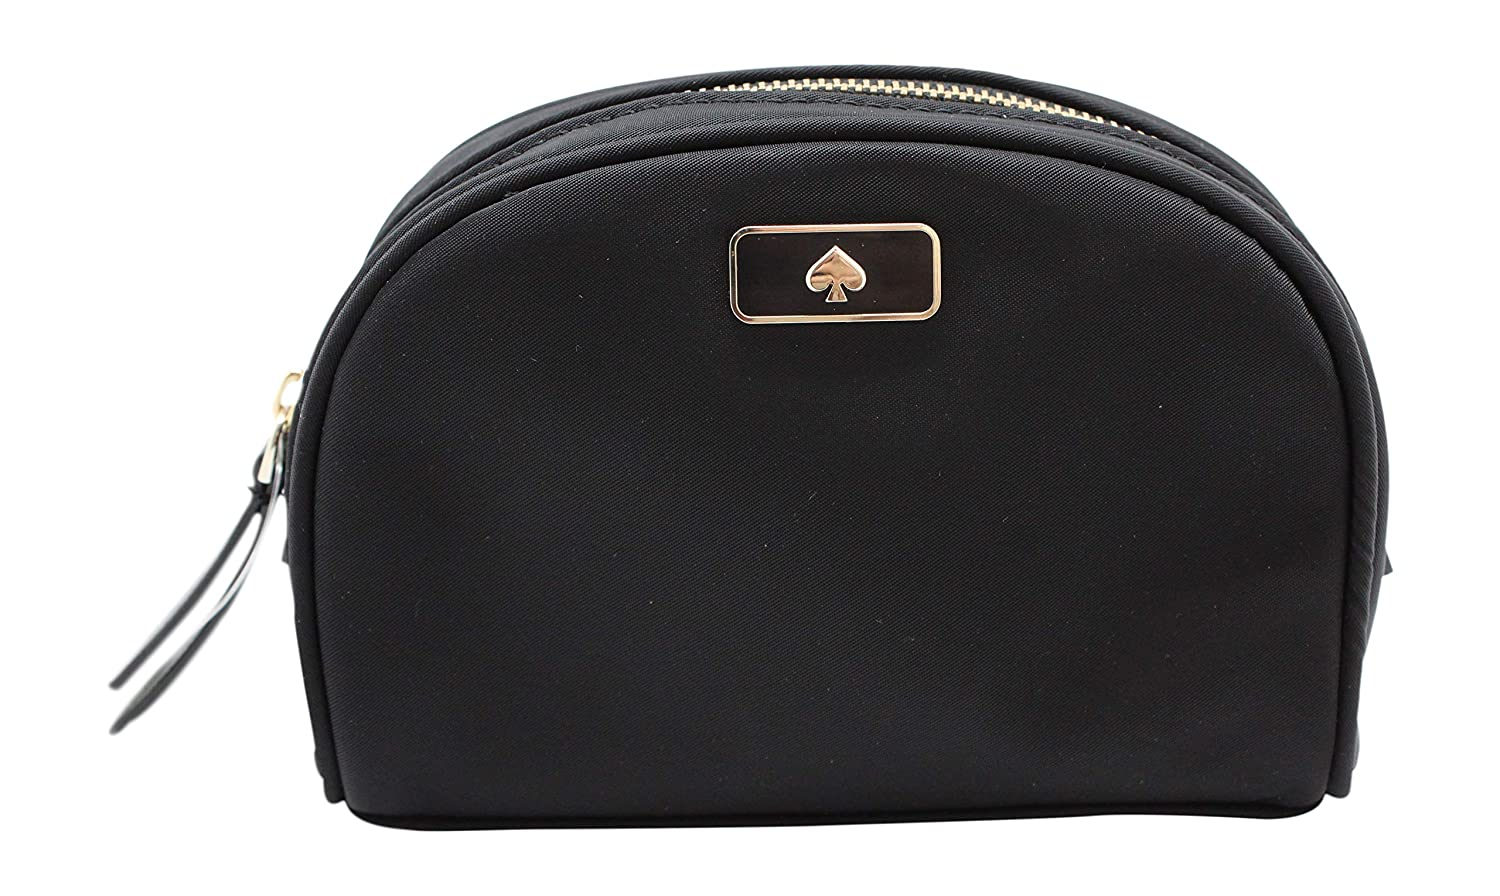 Kate Spade New York Small Dome Cosmetic Make-Up Clutch Bag Black